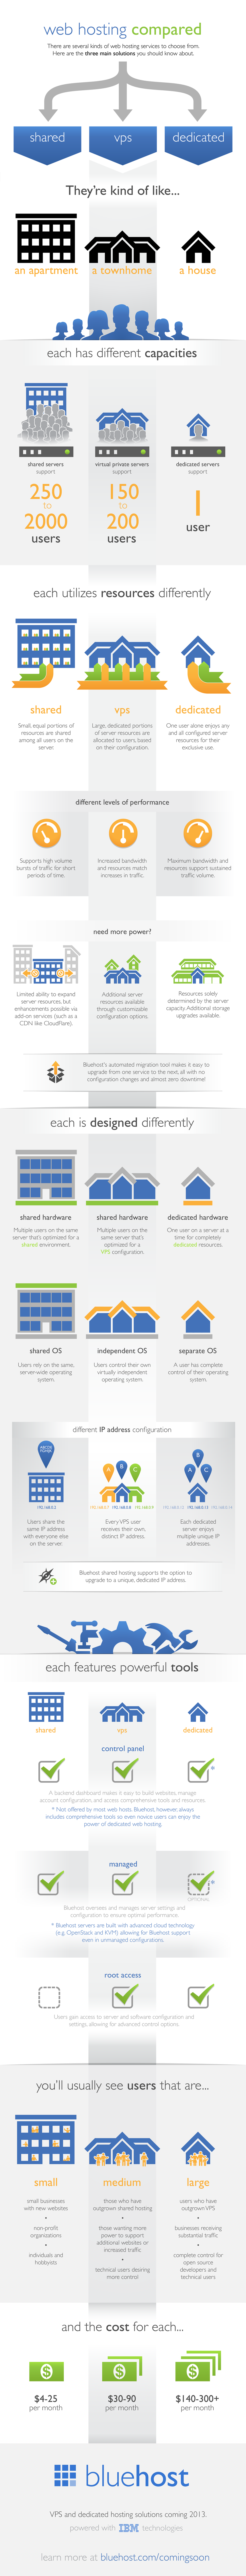 What Kind of Web Hosting Do I Need, Exactly infographic